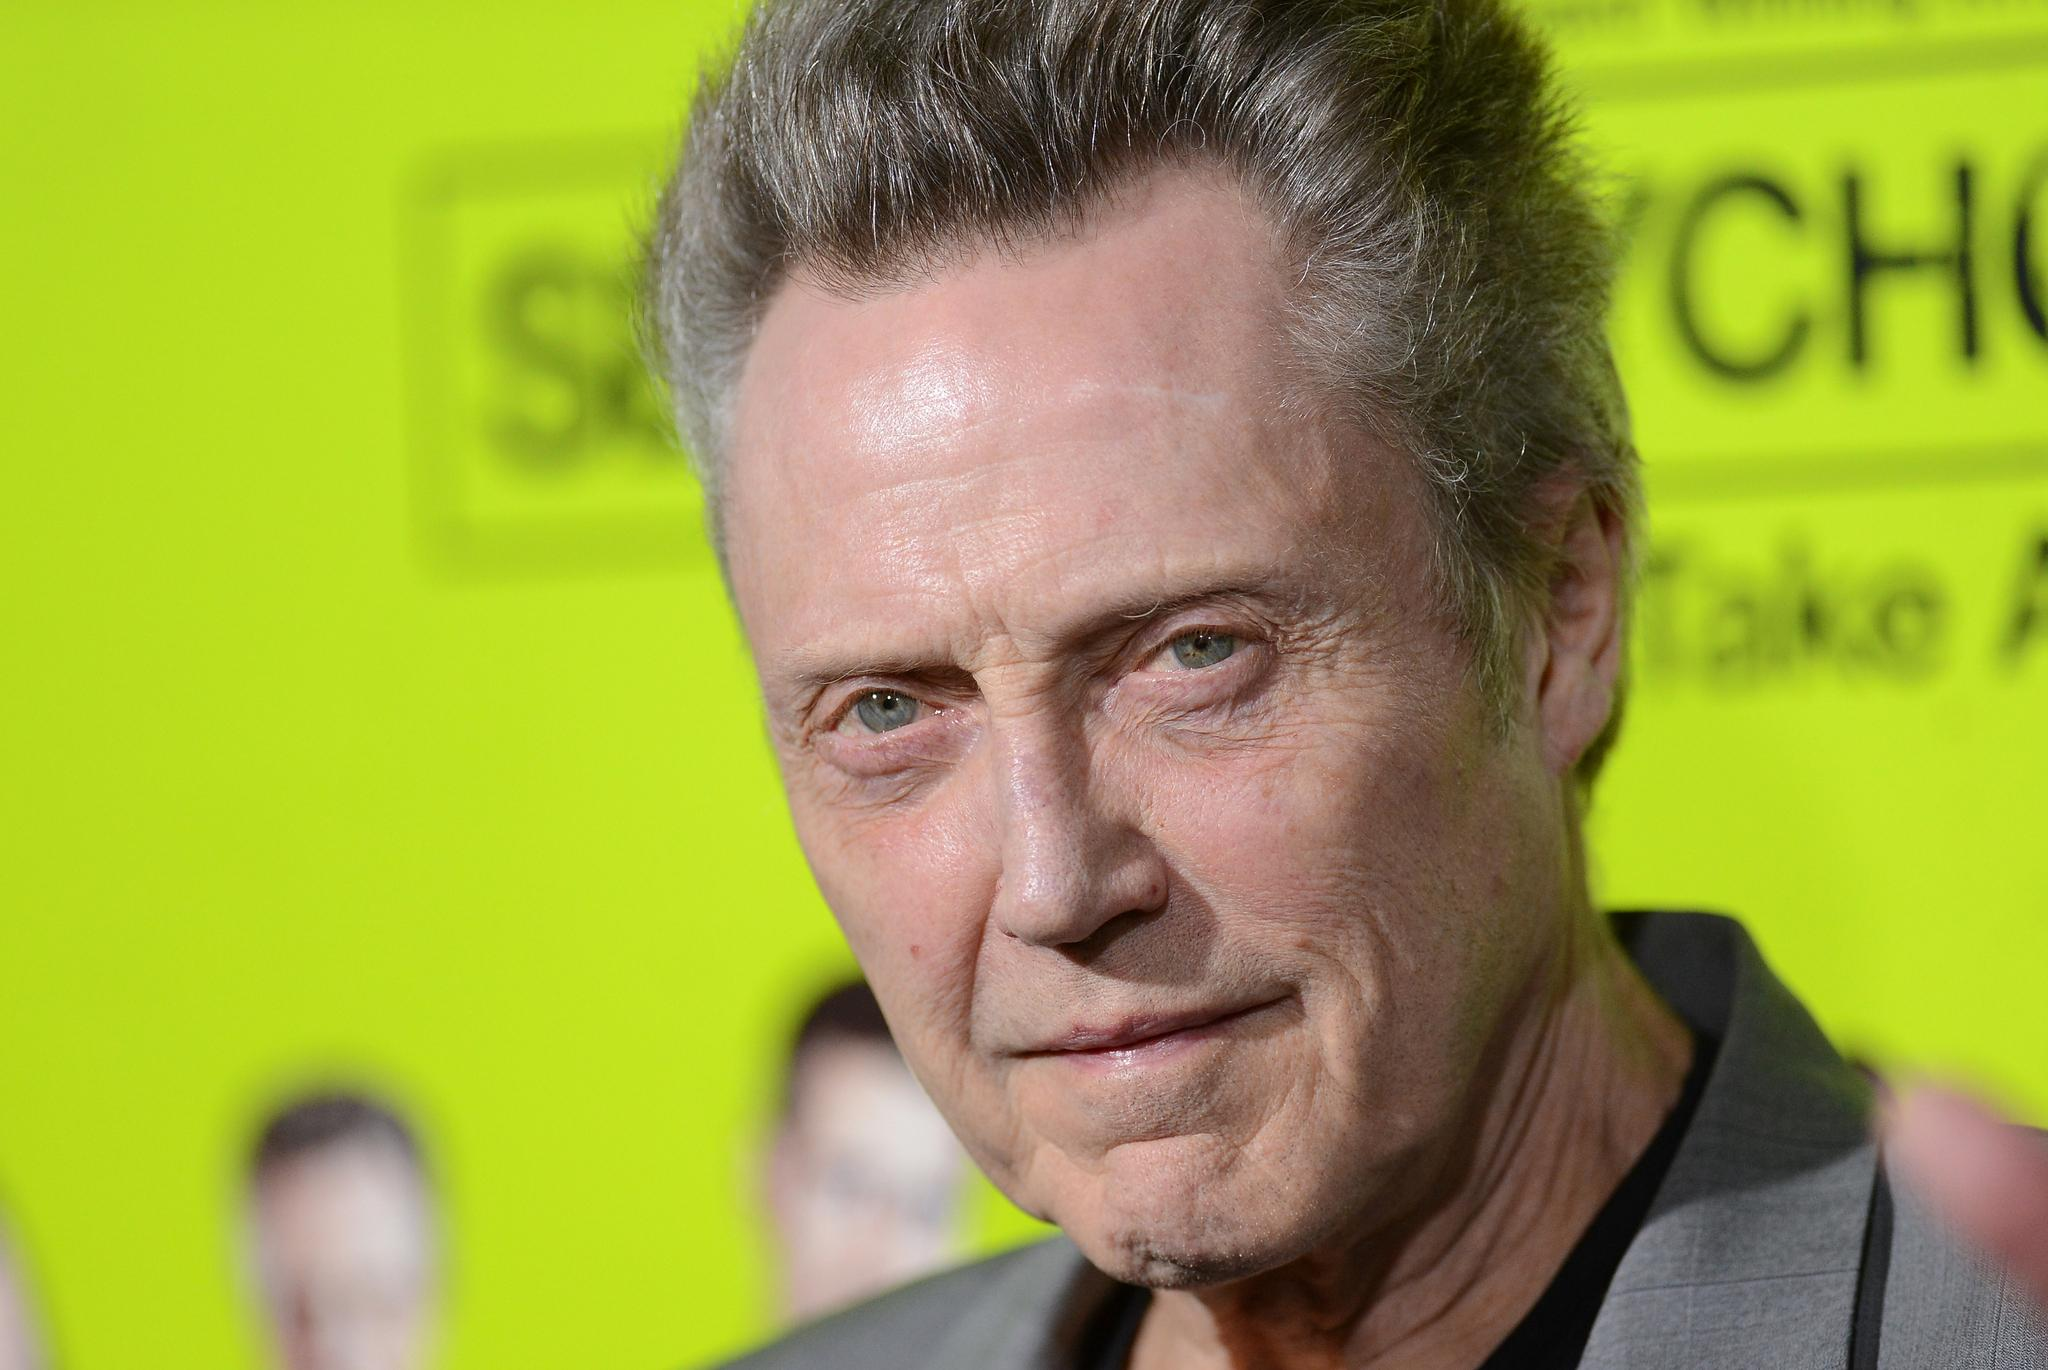 10 movies and tv shows to watch if you love empire as well Christopher Walken Joins The Family Fang in addition Oscars 2013 Not Bigelow Or Affleck Suraj Sharma Gets Biggest Snub 584738 also Breakthrough Series Shortform Gotham Awards 2016 950591 moreover Showthread. on oscar nomination 2016 list